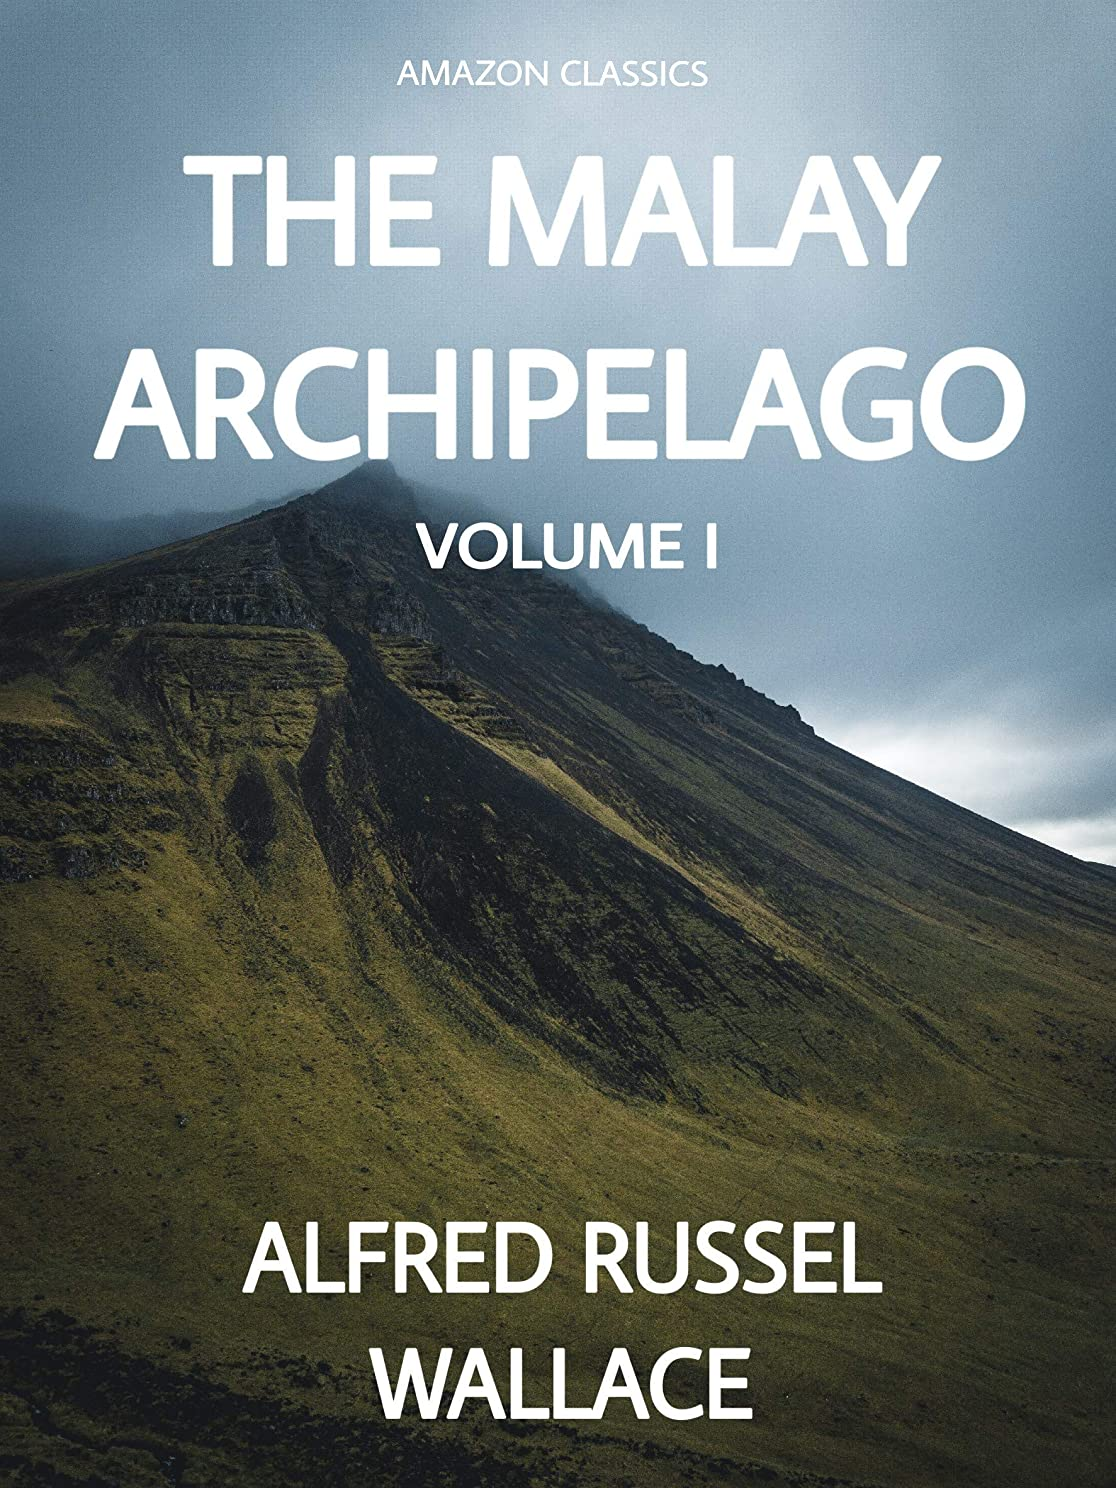 サンダー名詞代数的The Malay Archipelago (Illustrated): VOLUME I (English Edition)